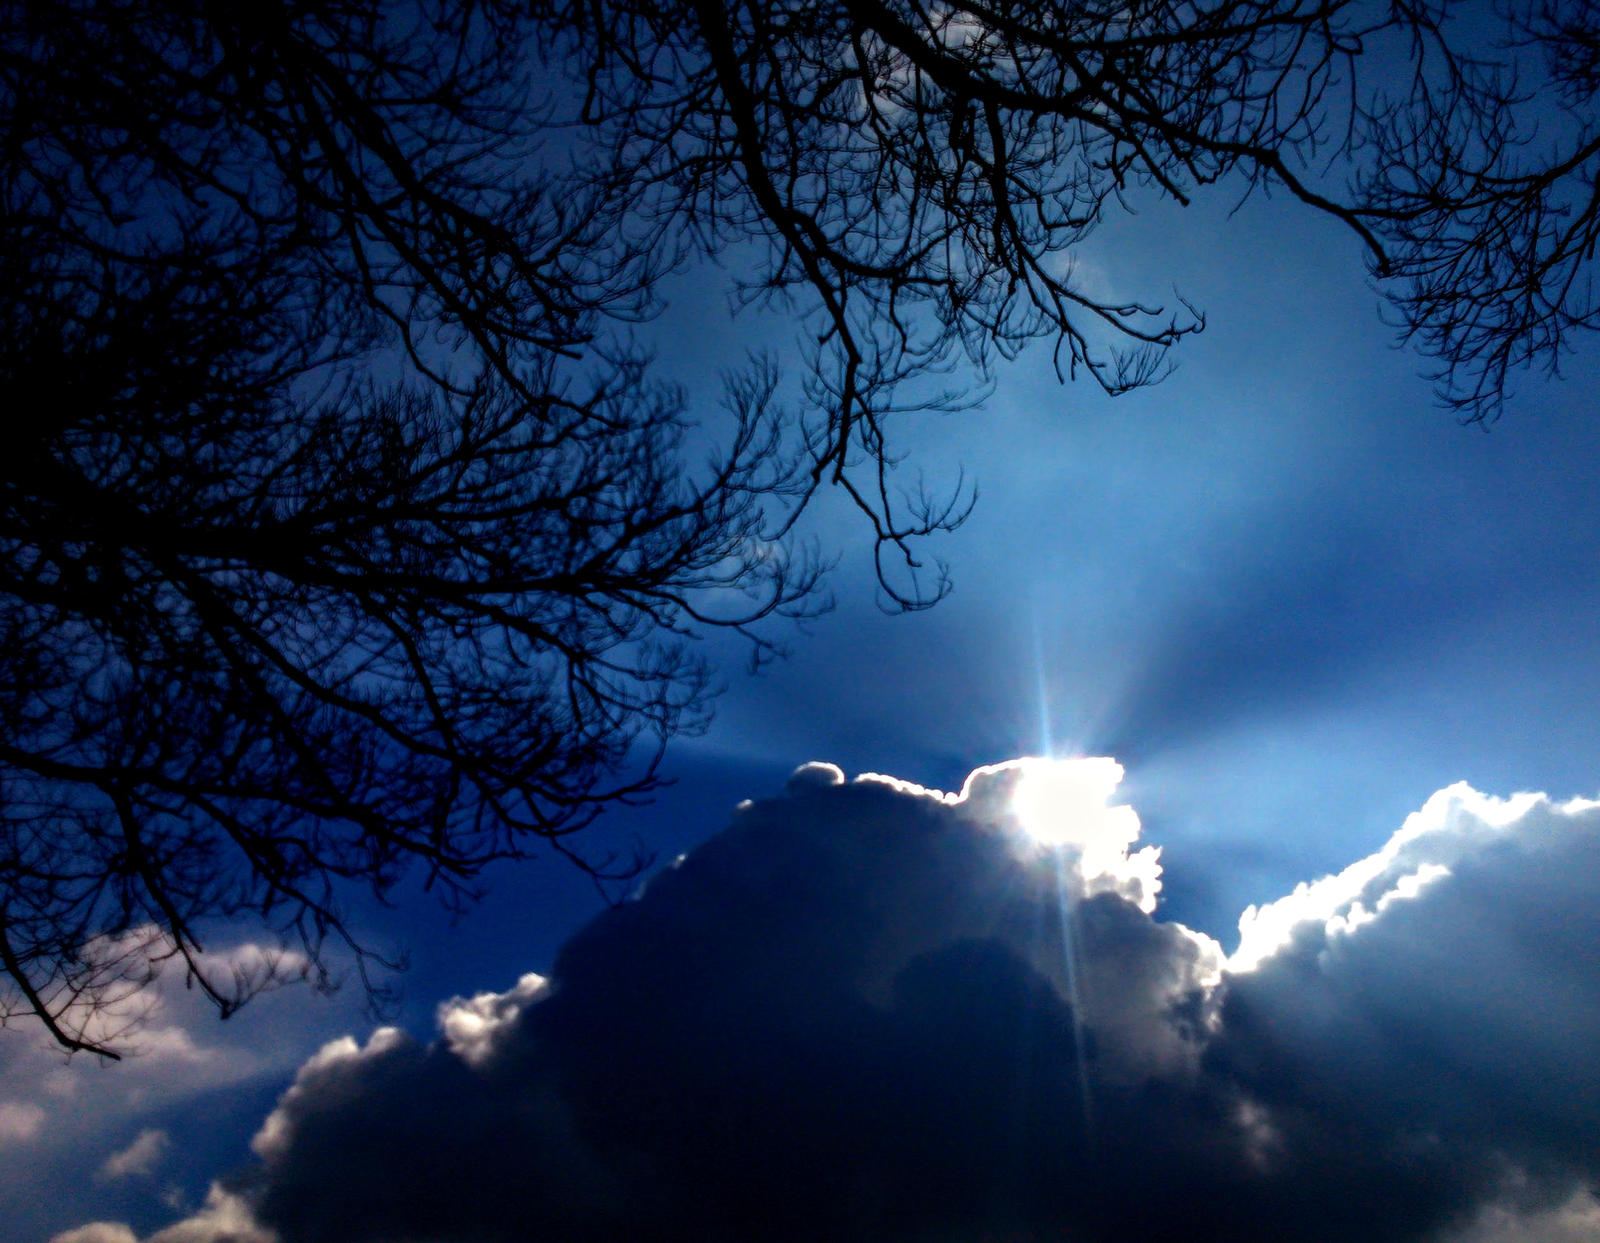 sky and tree by Mittelfranke